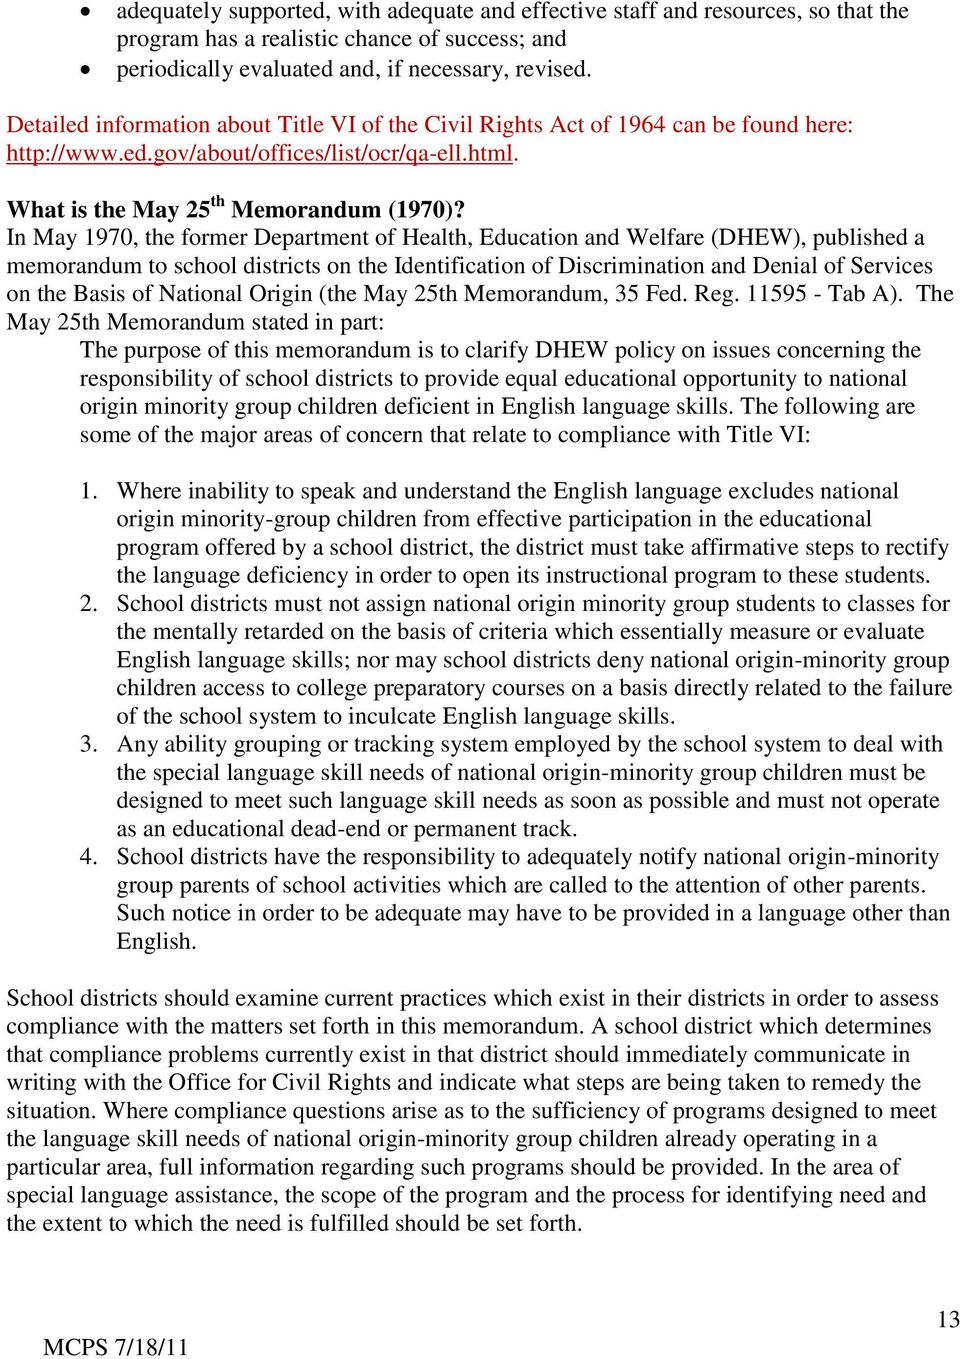 In May 1970, the former Department of Health, Education and Welfare (DHEW), published a memorandum to school districts on the Identification of Discrimination and Denial of Services on the Basis of